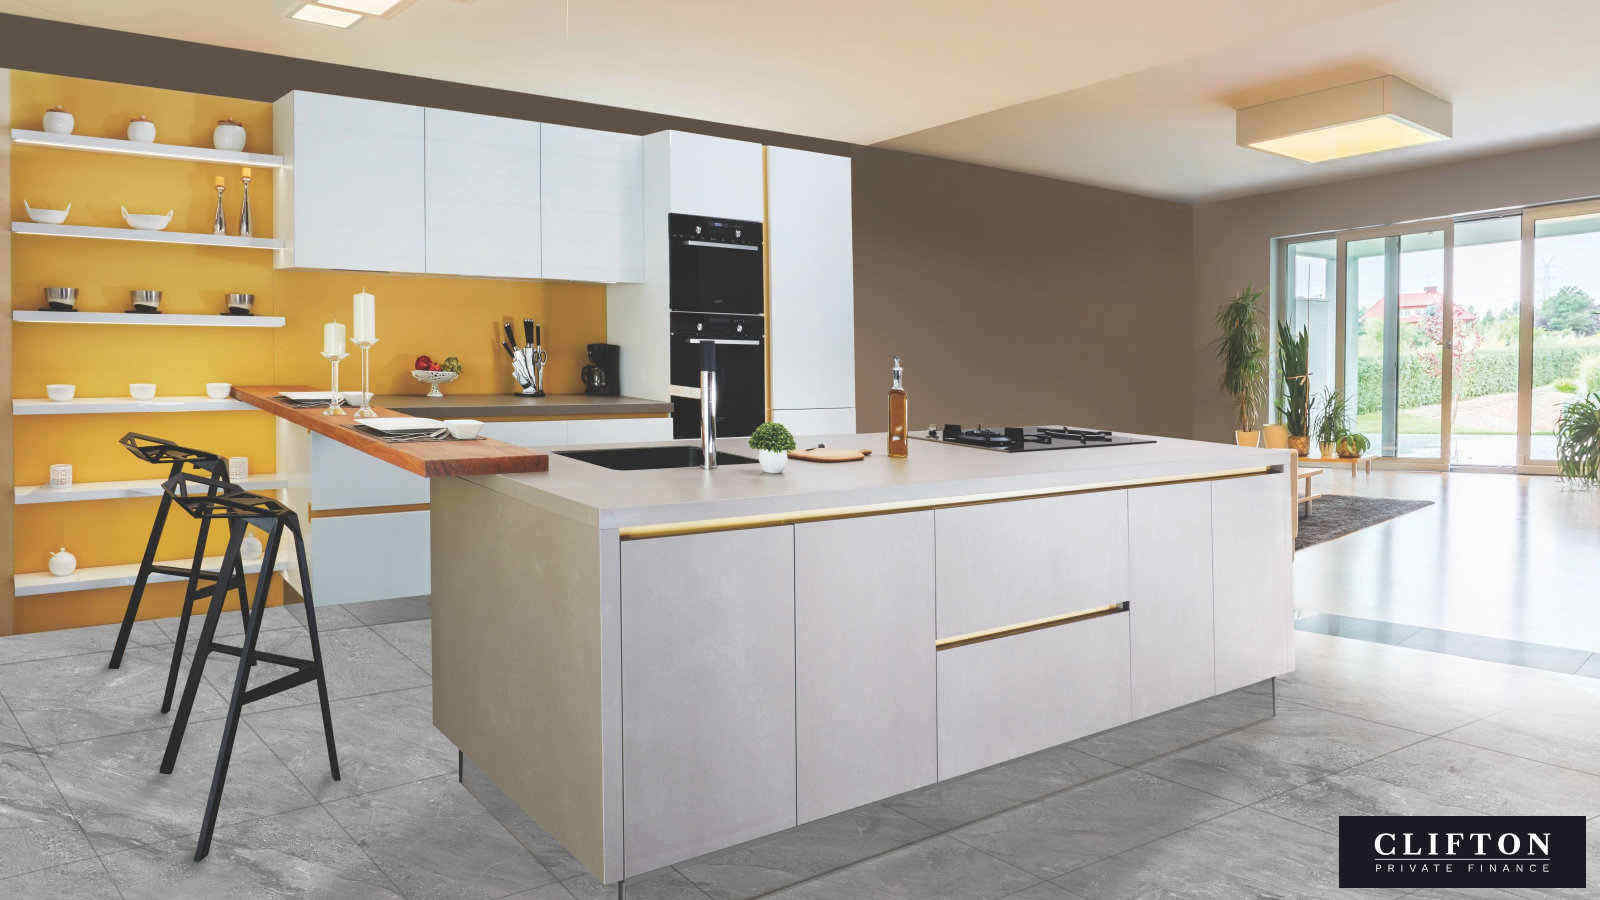 Kitchen renovations: how to pay for UK's most popular home improvement